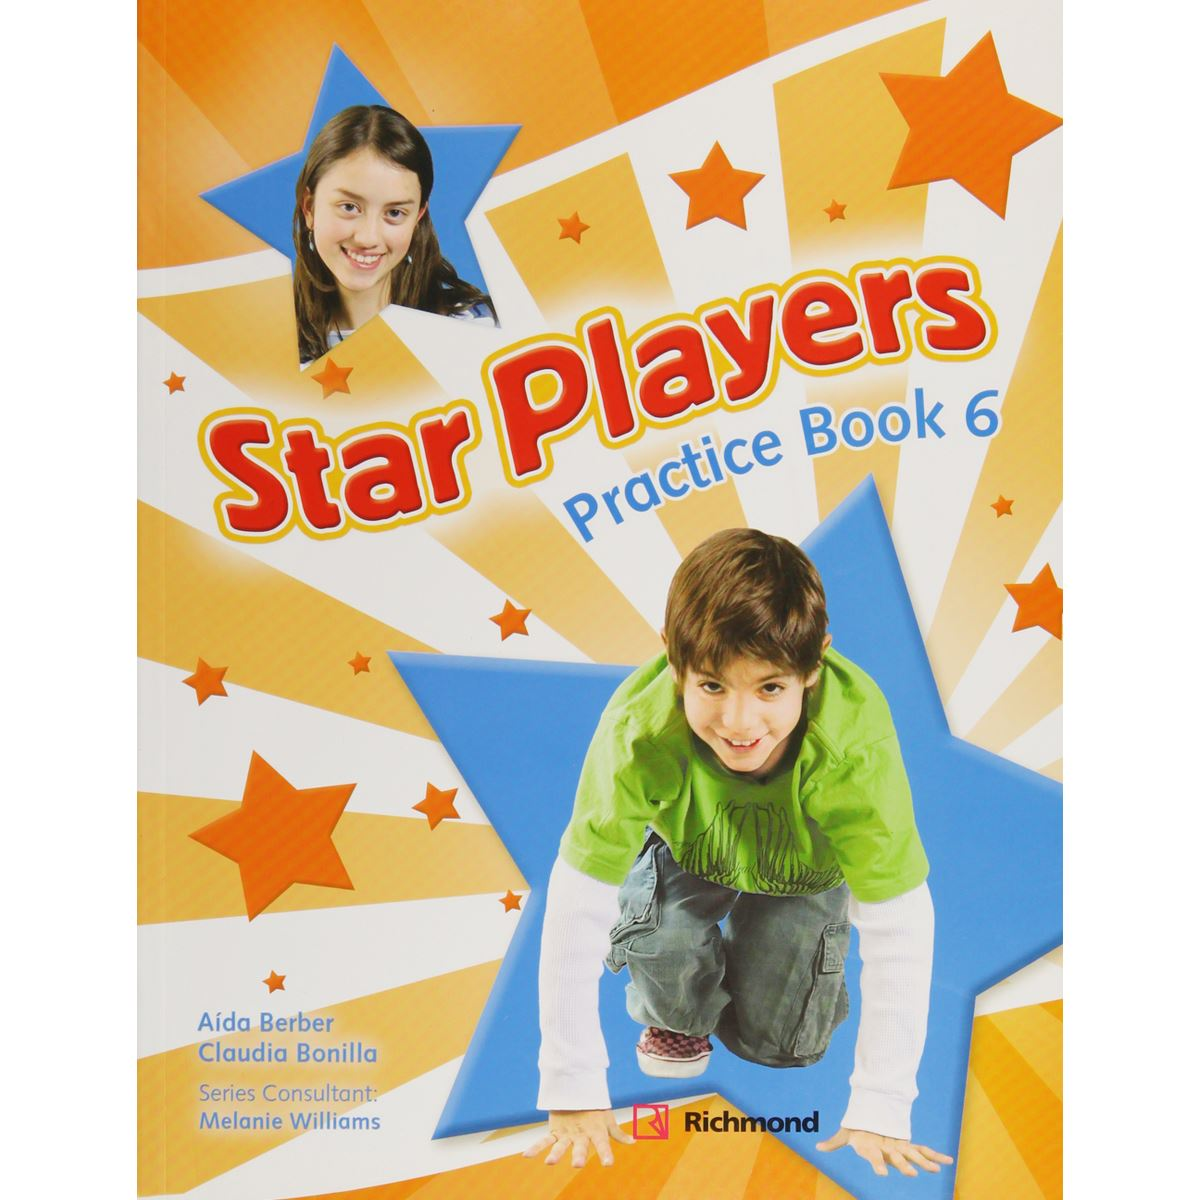 Star Players 6 Practice Book